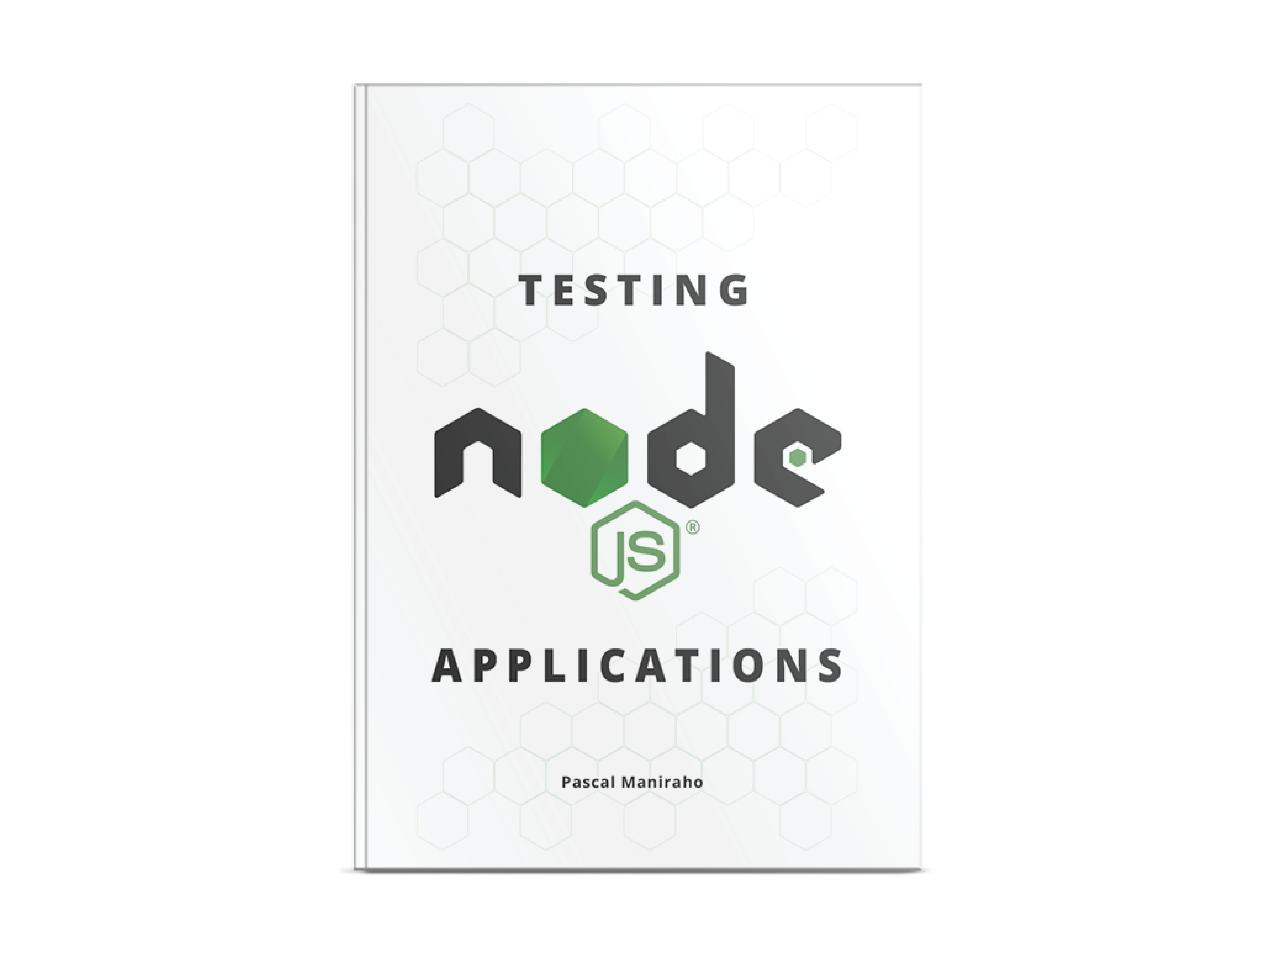 Testing Nodejs Applications Book Cover